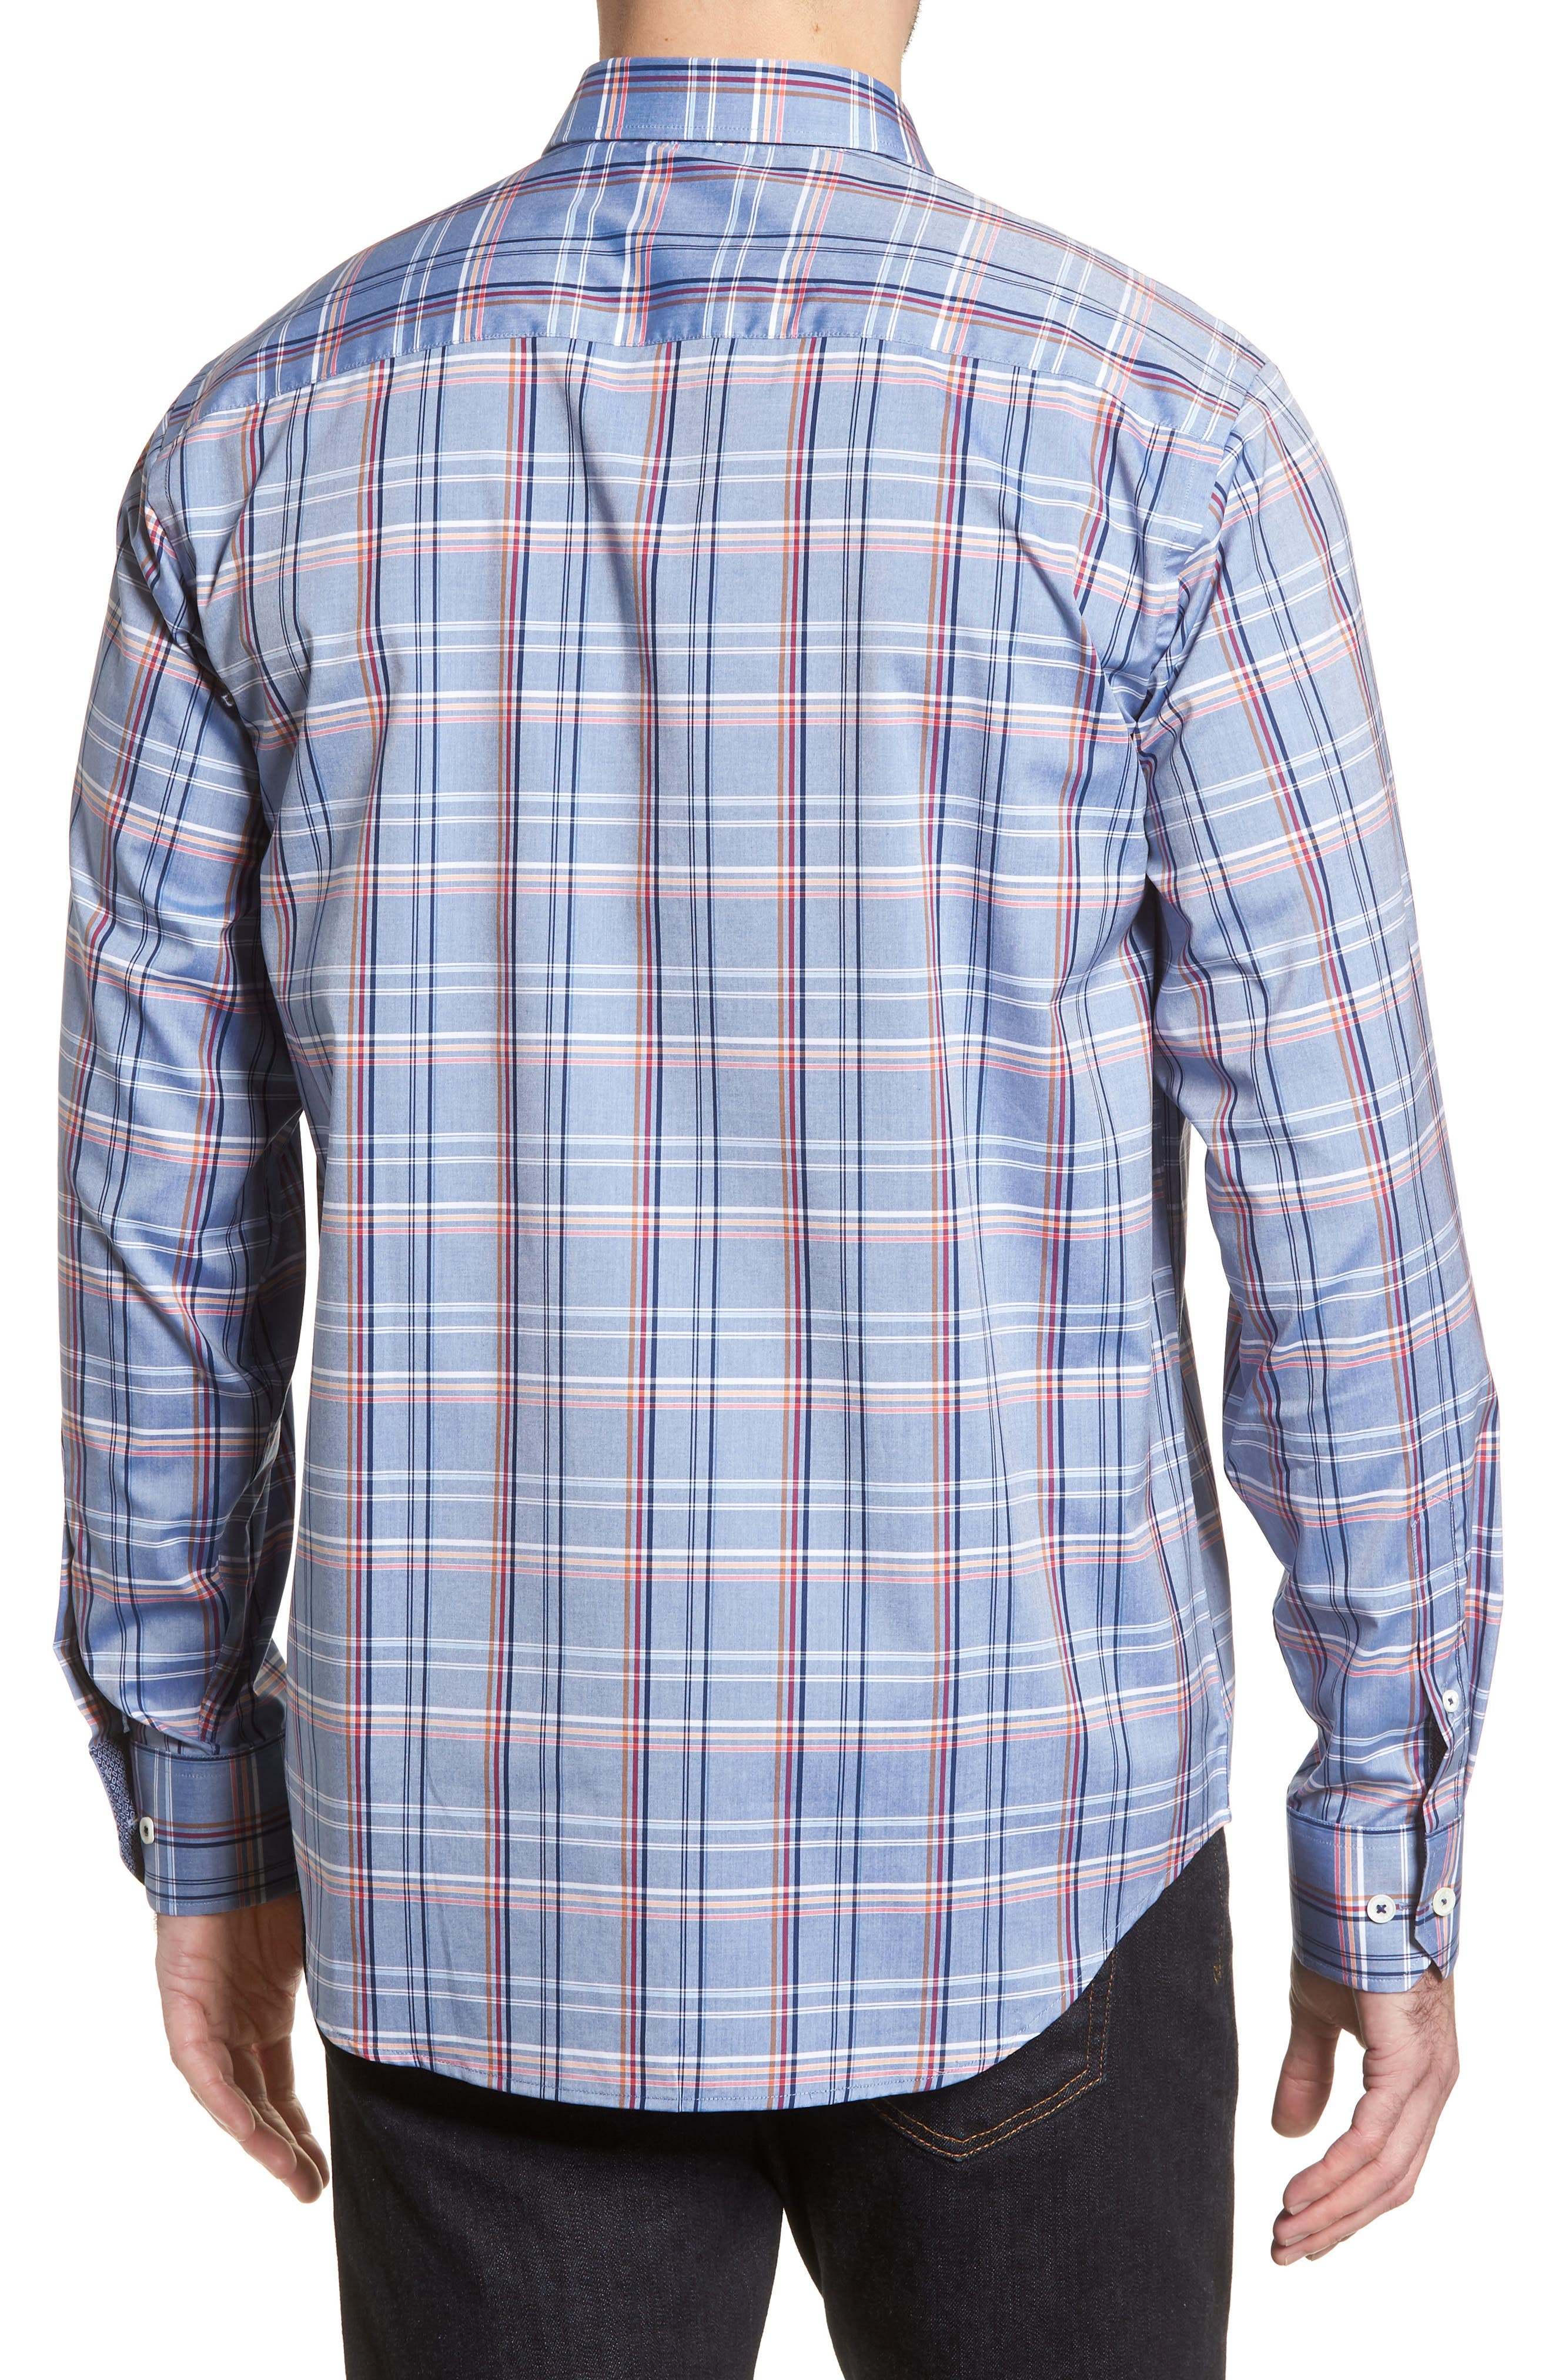 Classic Fit Urban Plaid Sport Shirt,                             Alternate thumbnail 2, color,                             Steel